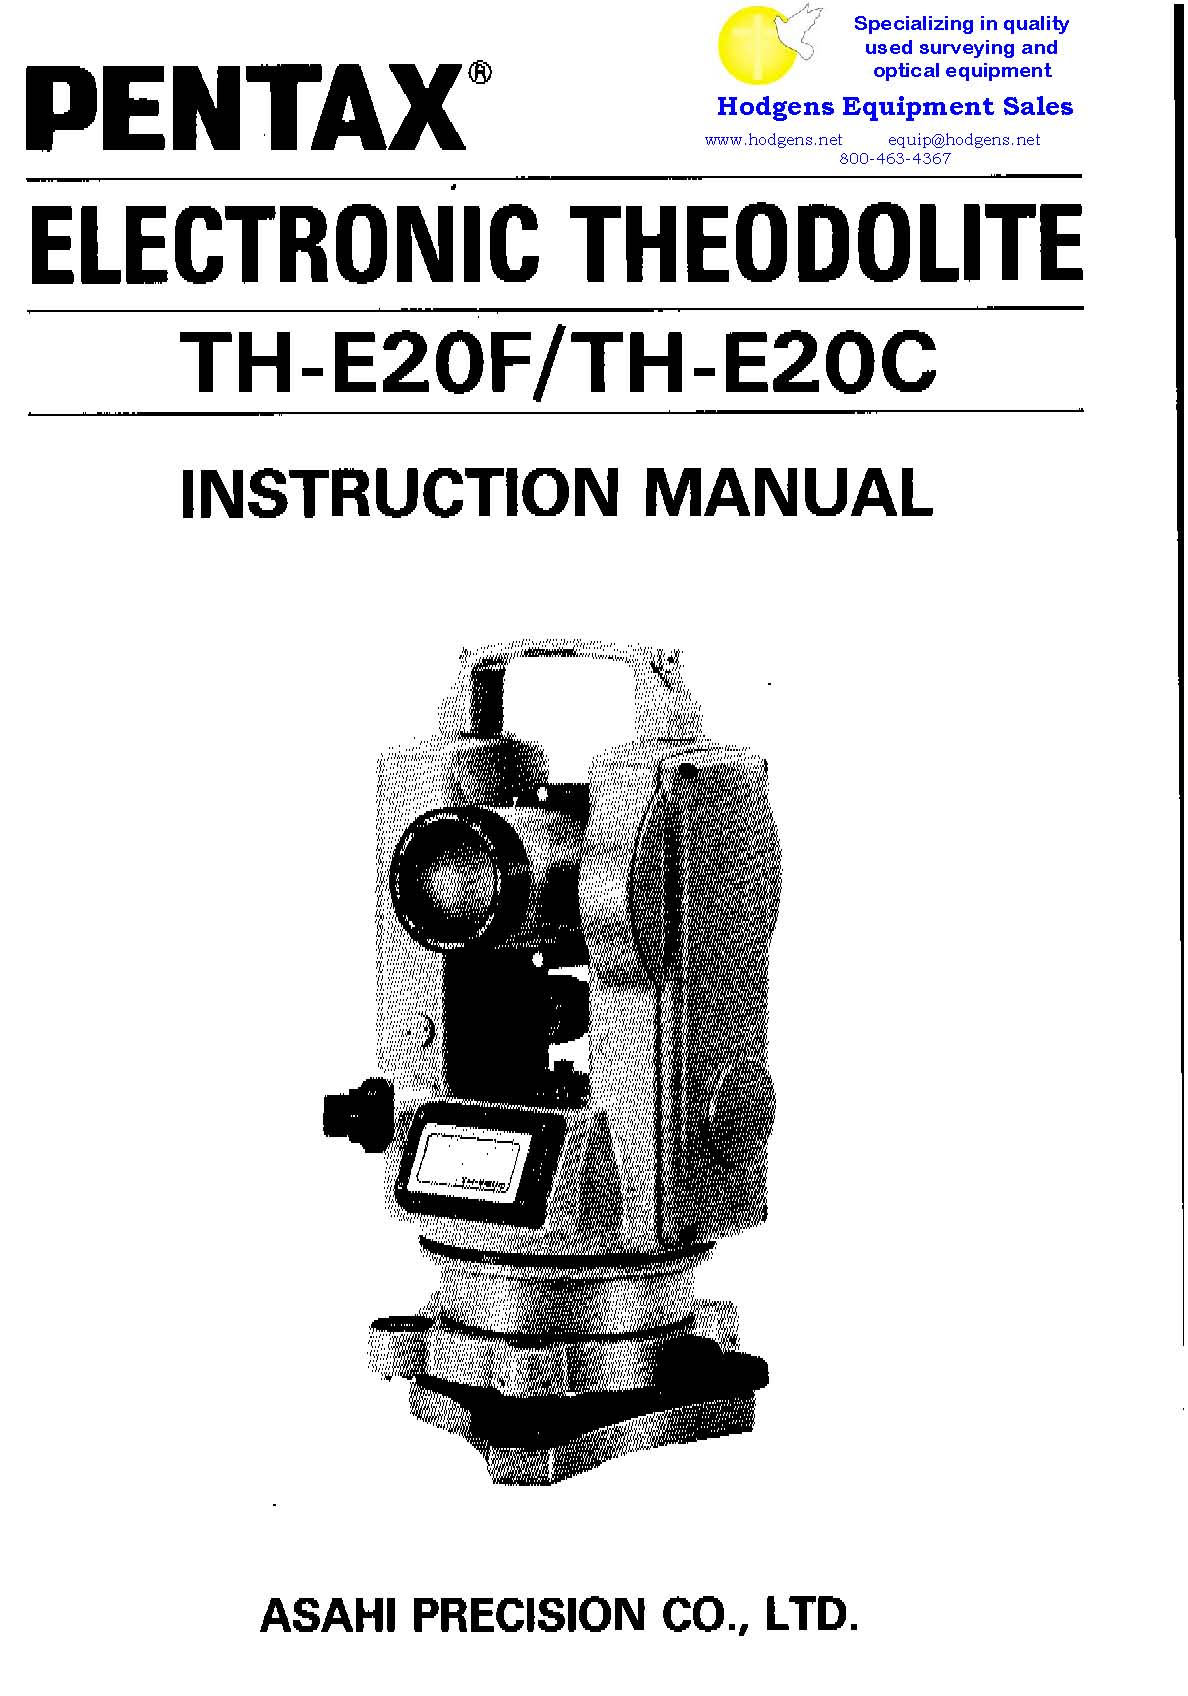 Pentax electronic theodolite th e20c th e20f instruction for Roca 20 20f manual